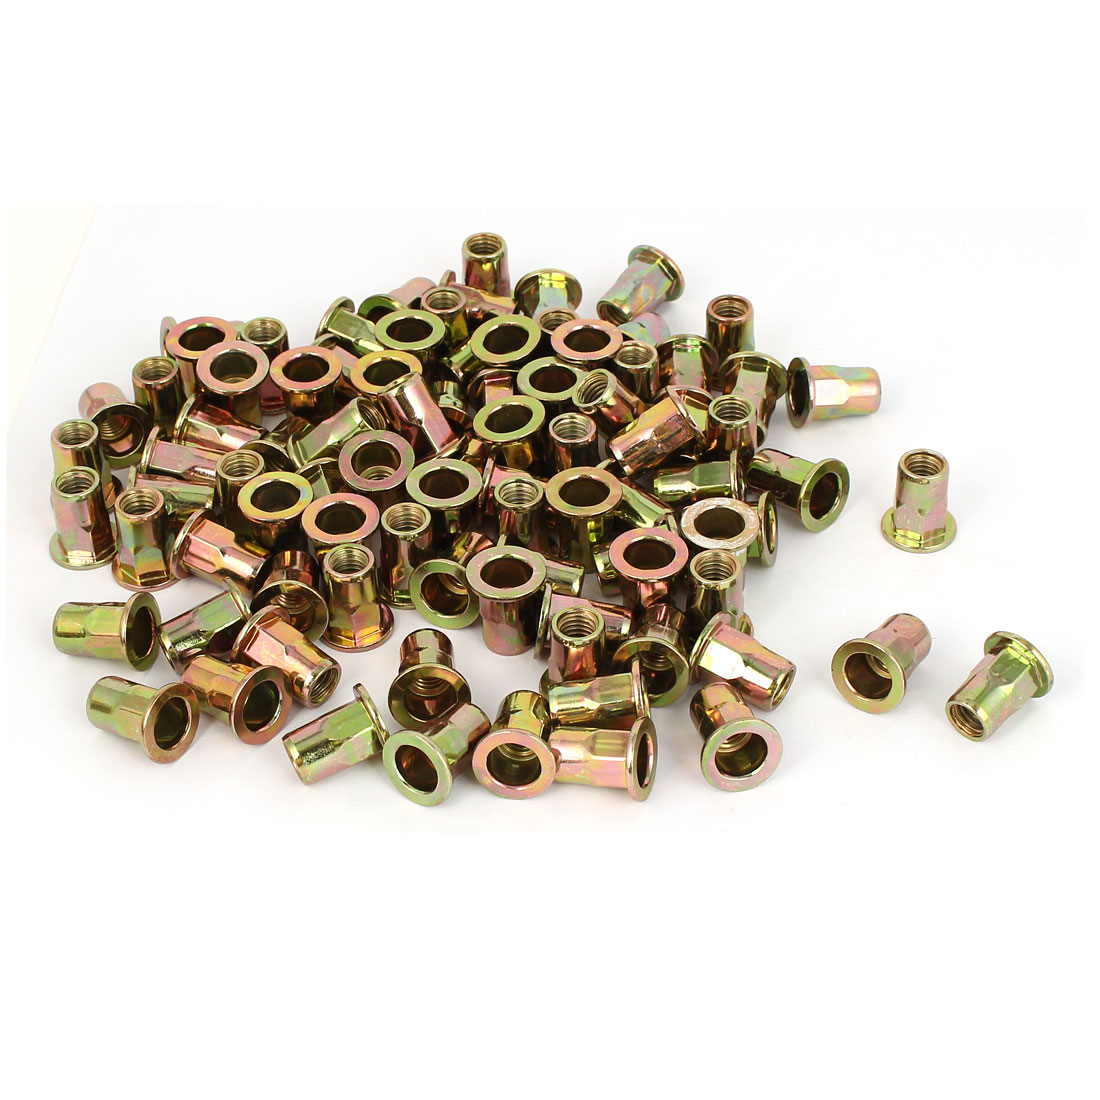 M8 x 19mm Flat Head Half Hex Body Insert Rivet Nut Nutserts Fastener 100pcs